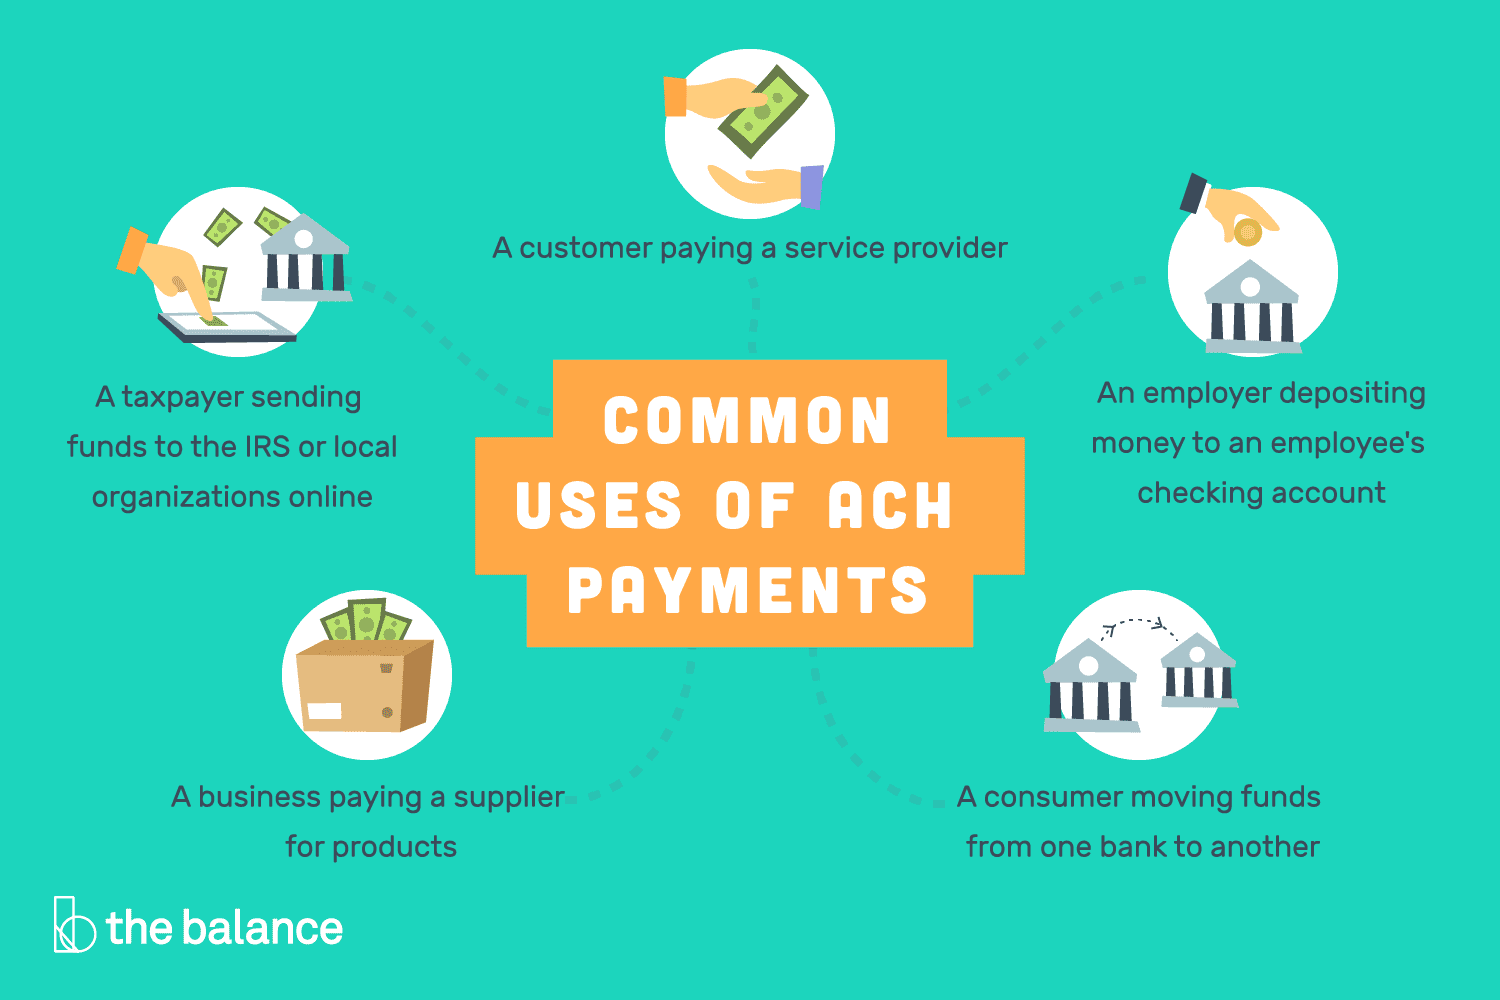 Learn How ACH Payments Work